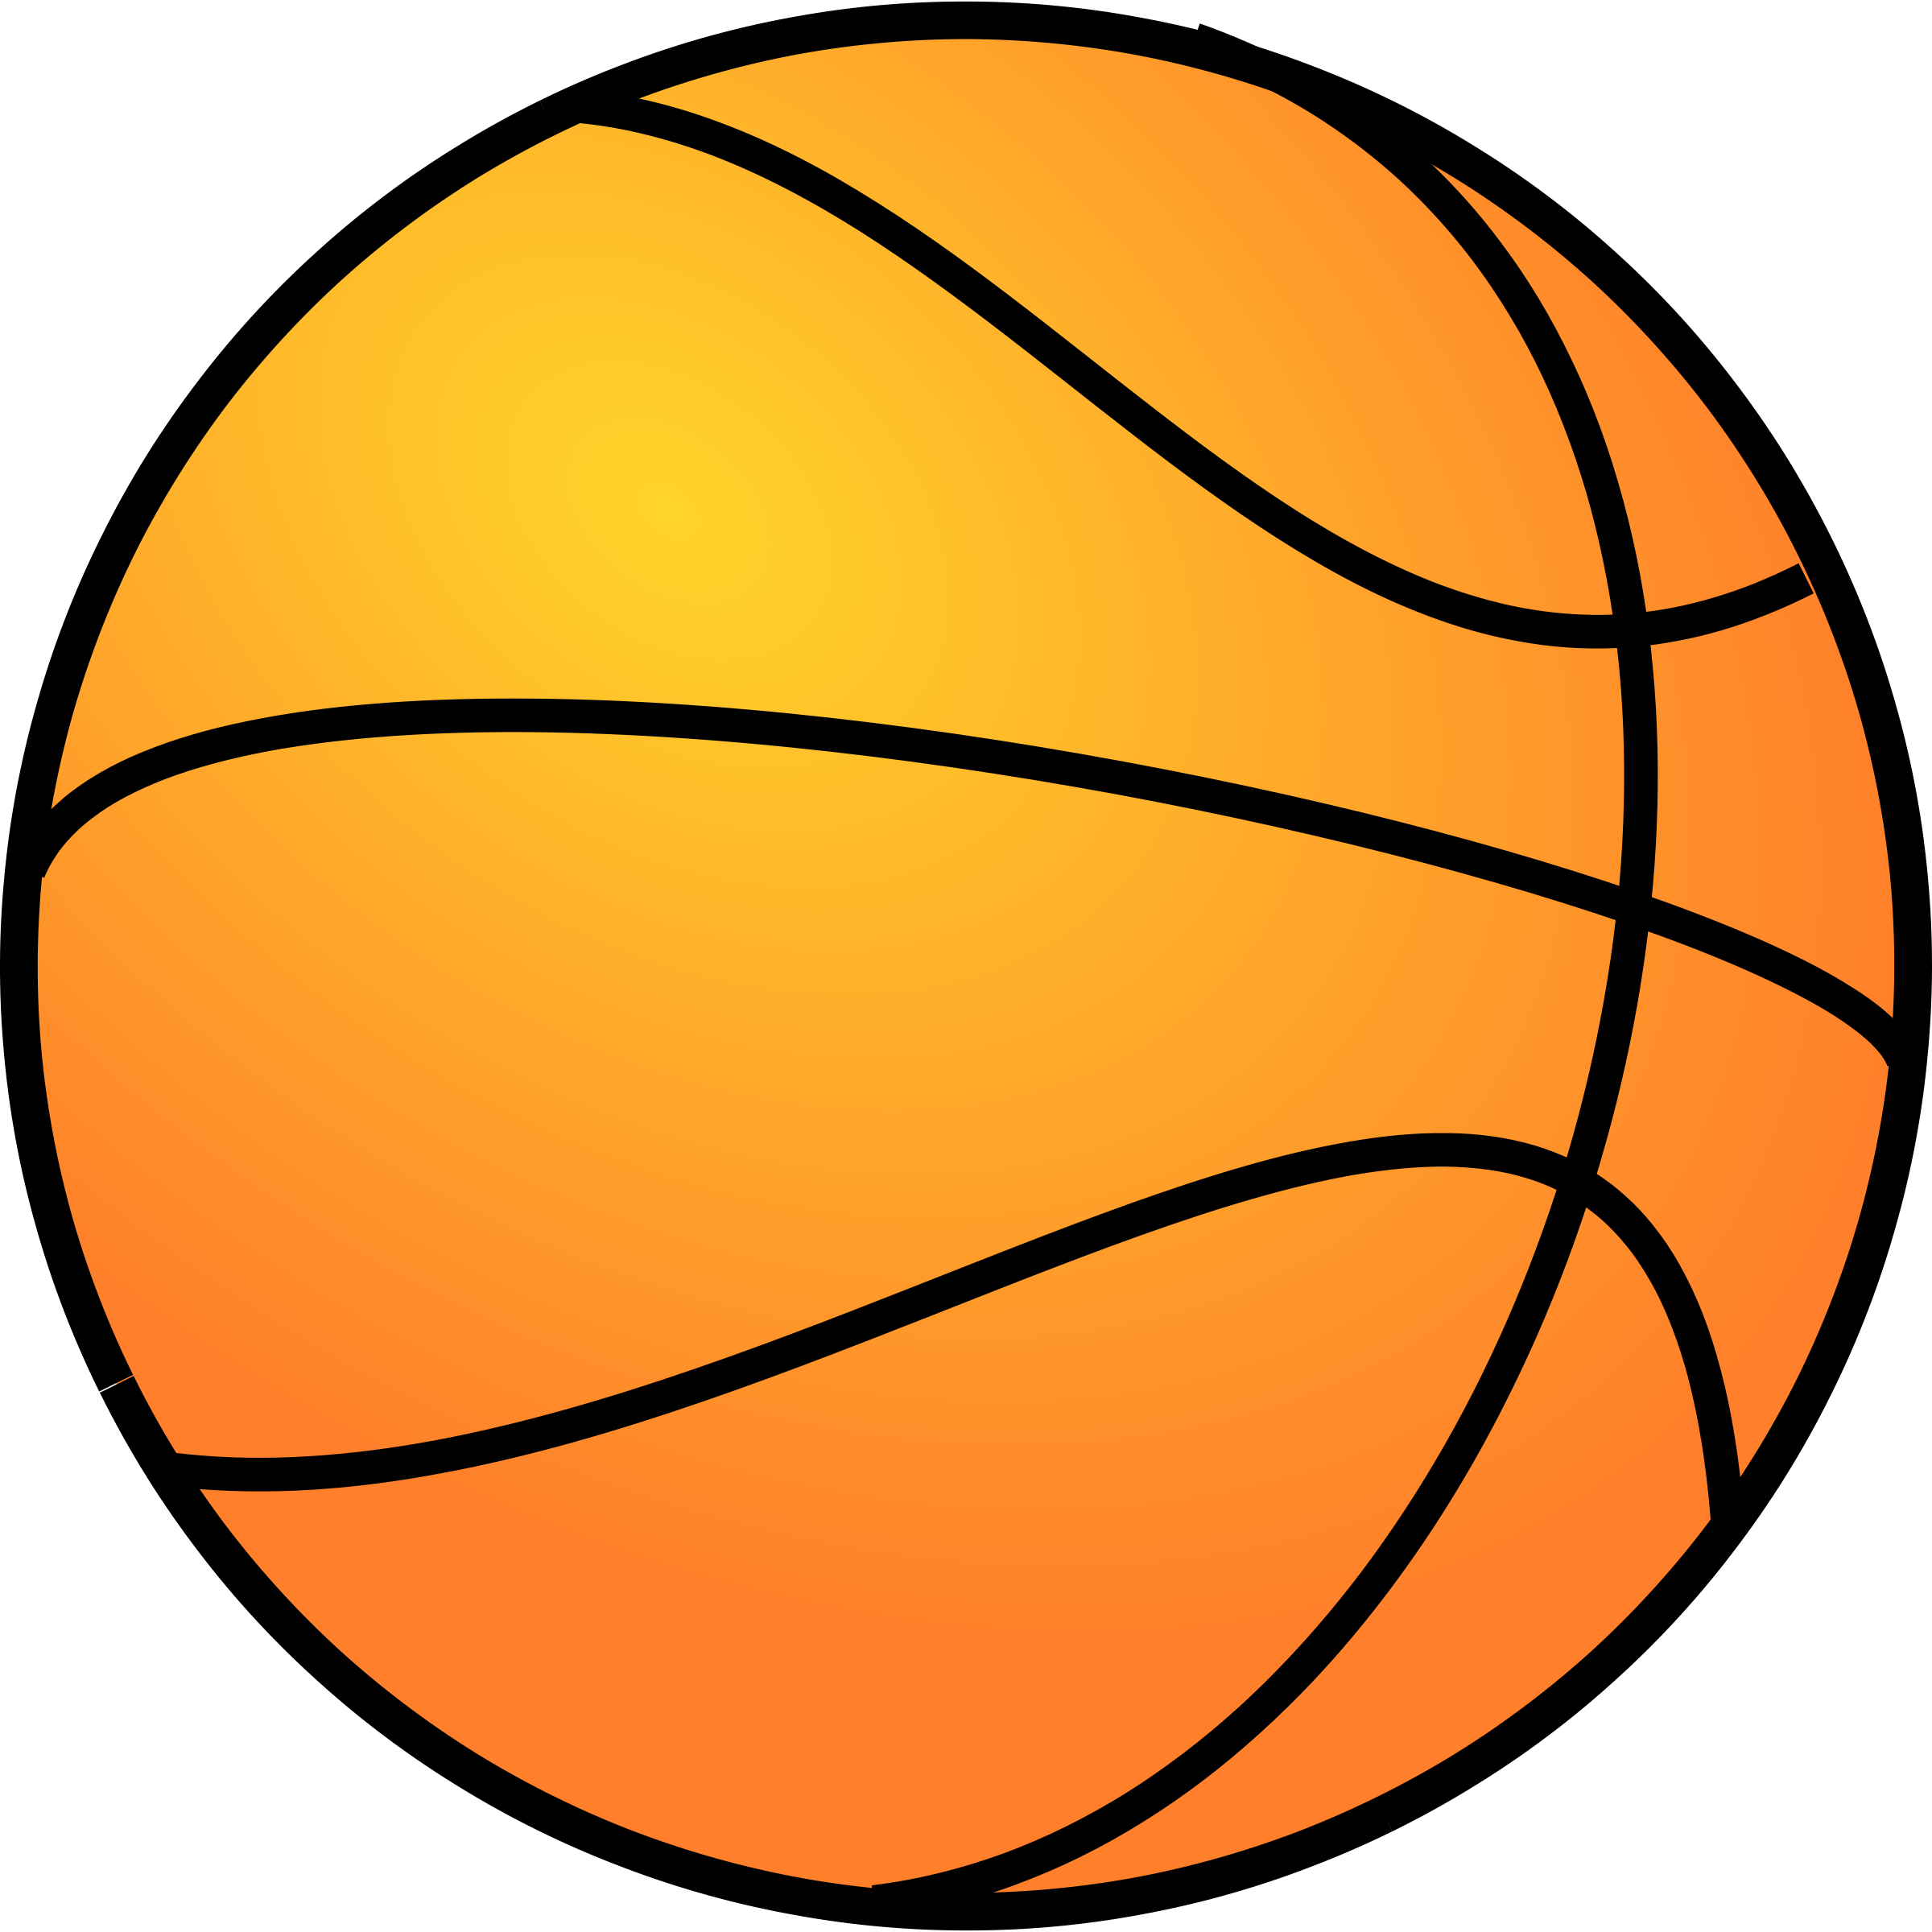 basketball clipart - Basketball Clipart Images